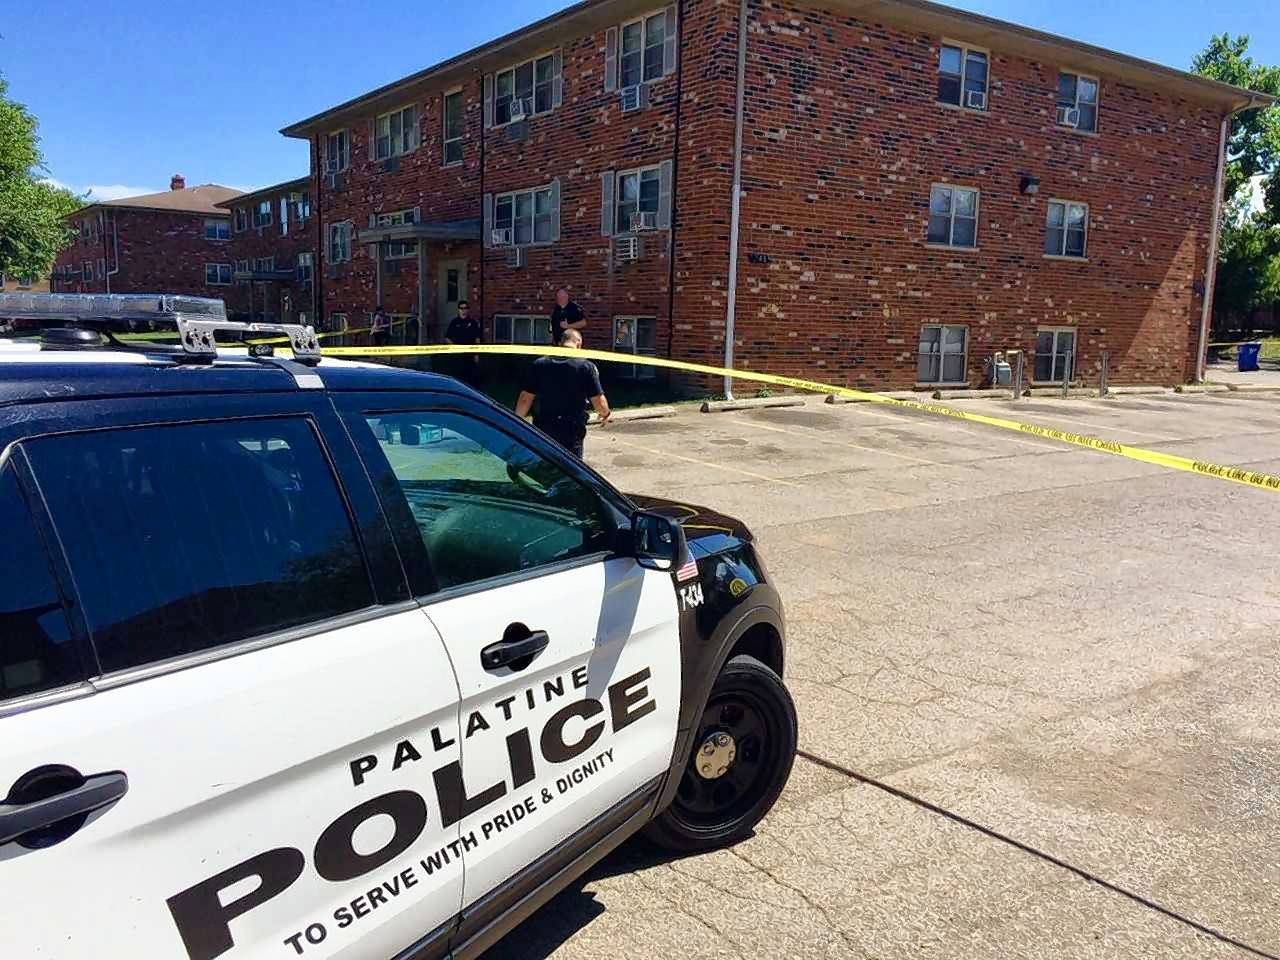 Palatine police are investigating the shooting of a 19-year-old man Tuesday afternoon at an apartment building in the 1700 block of North Rose Avenue. No one is in custody, police said.